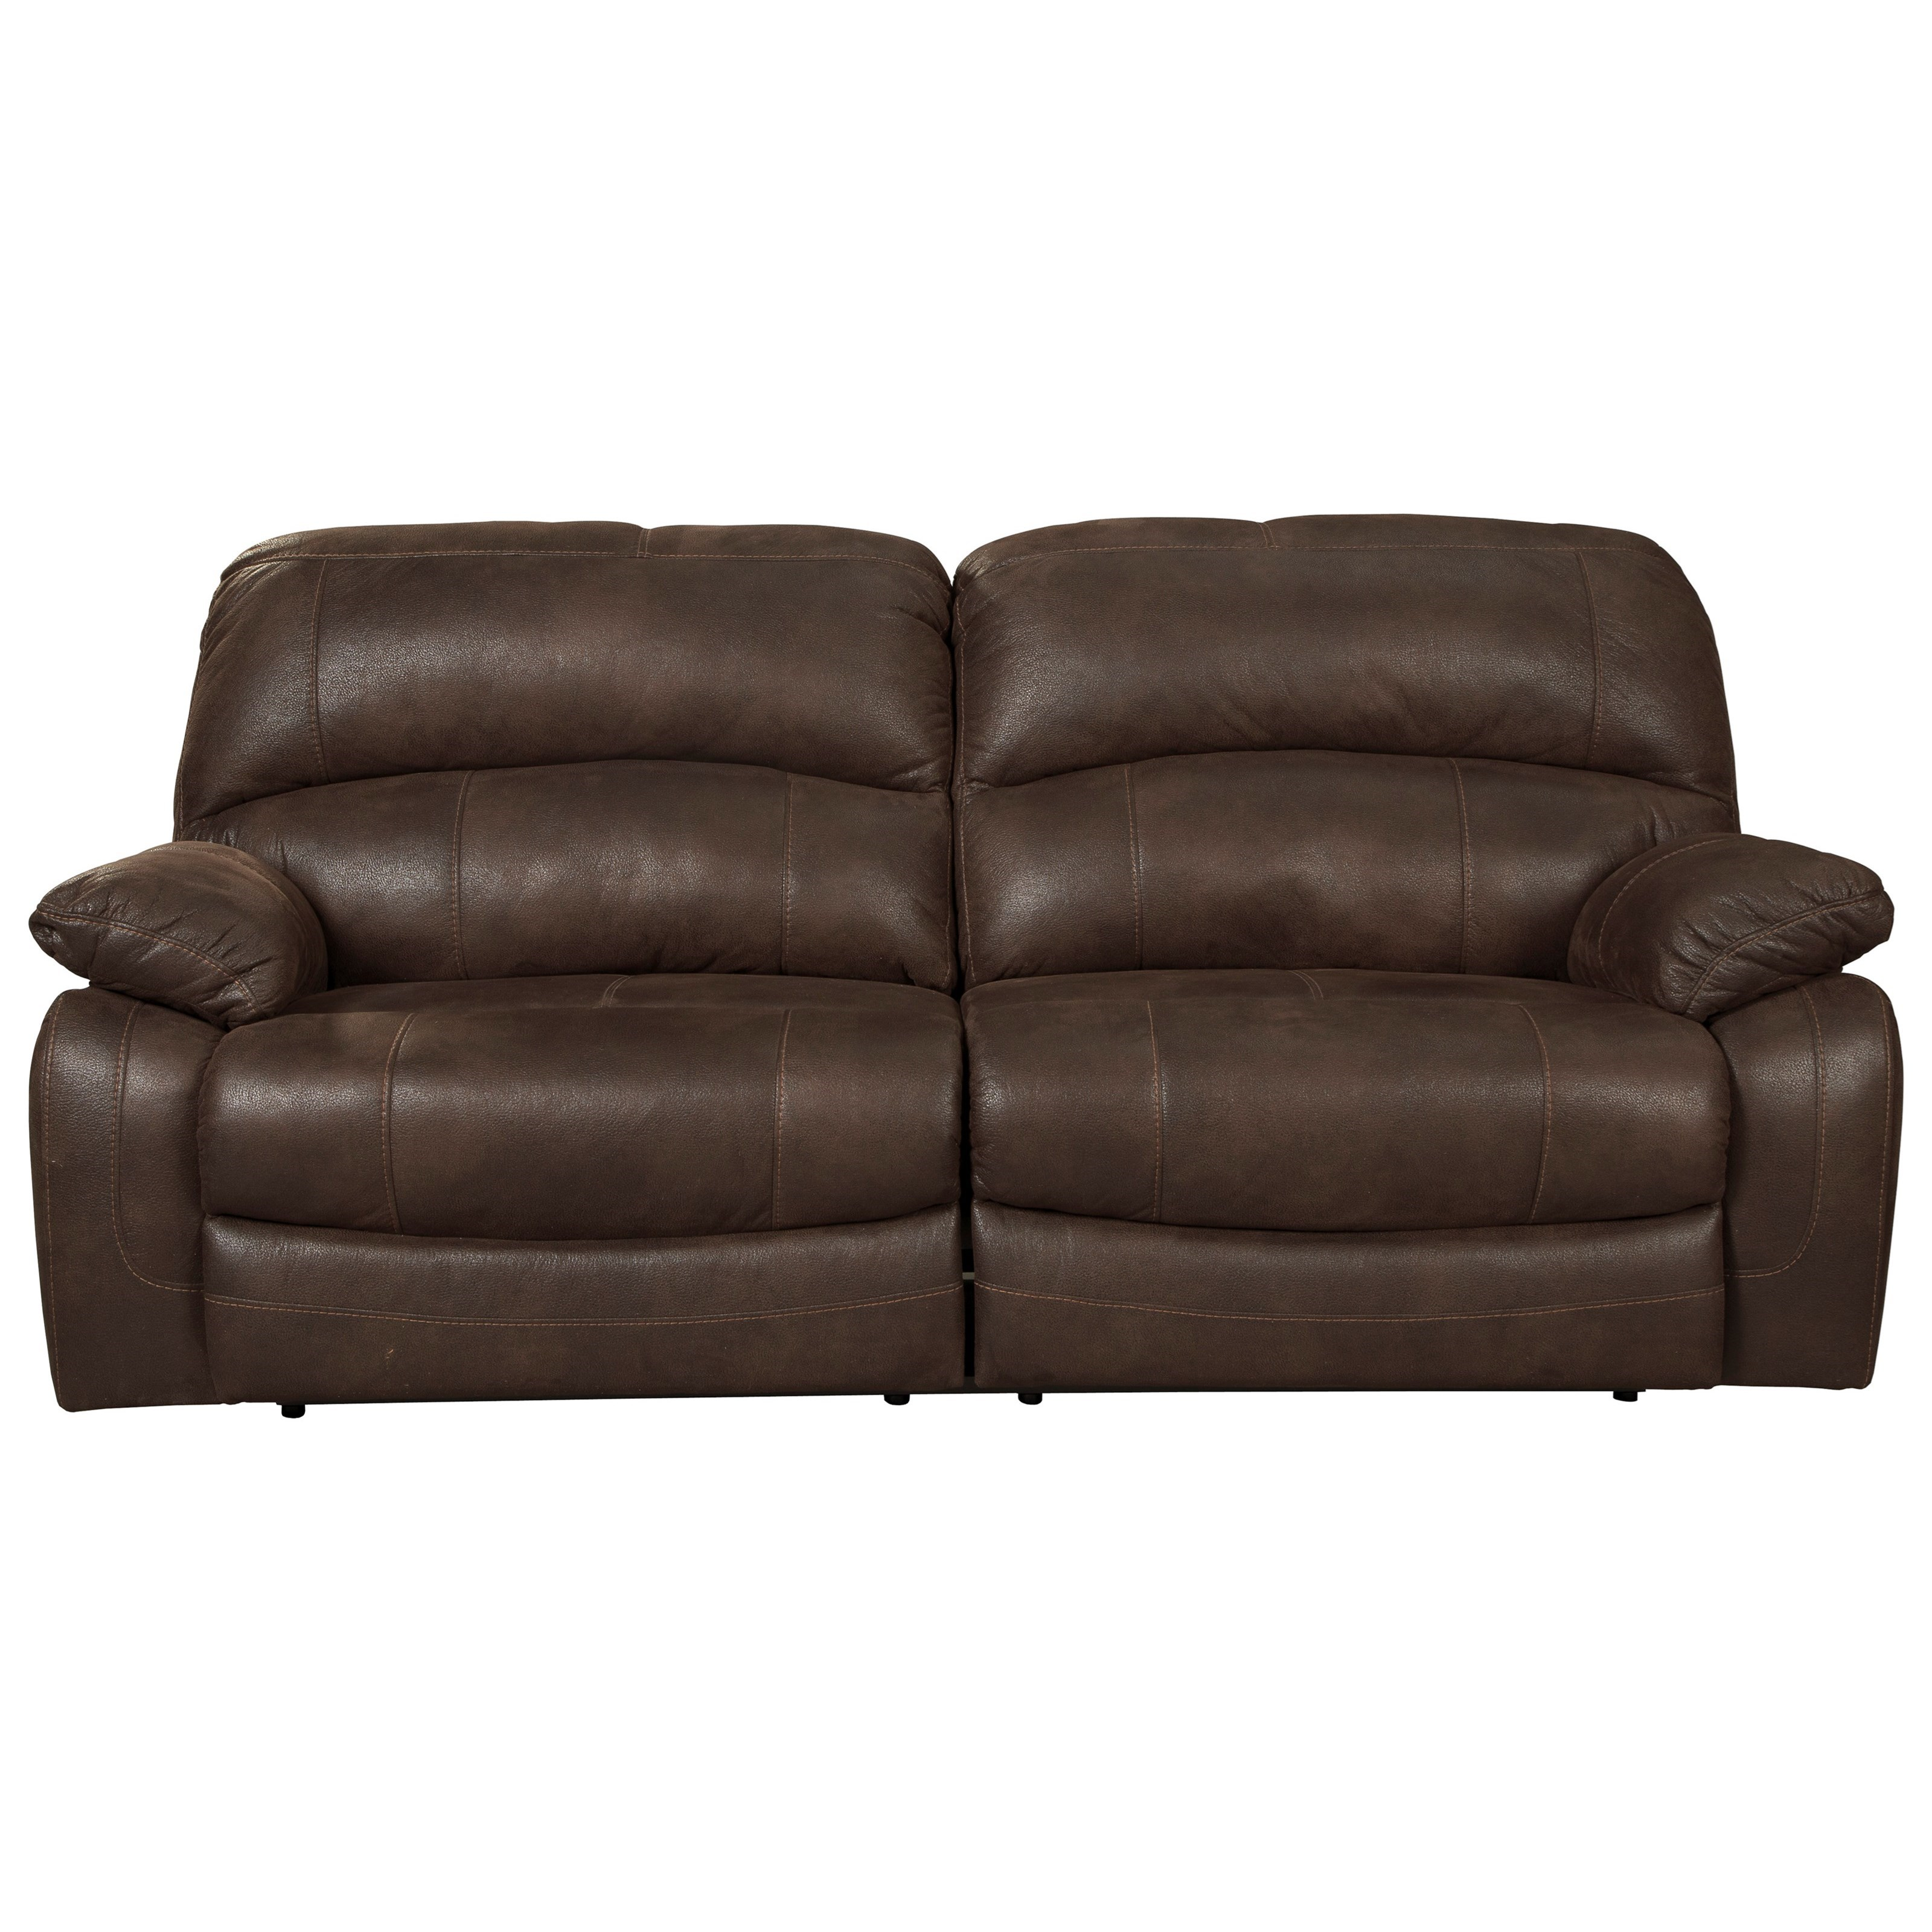 marlow reclining sofa loveseat and chair set southwestern style bed ashley signature design zavier 4290181 2 seat